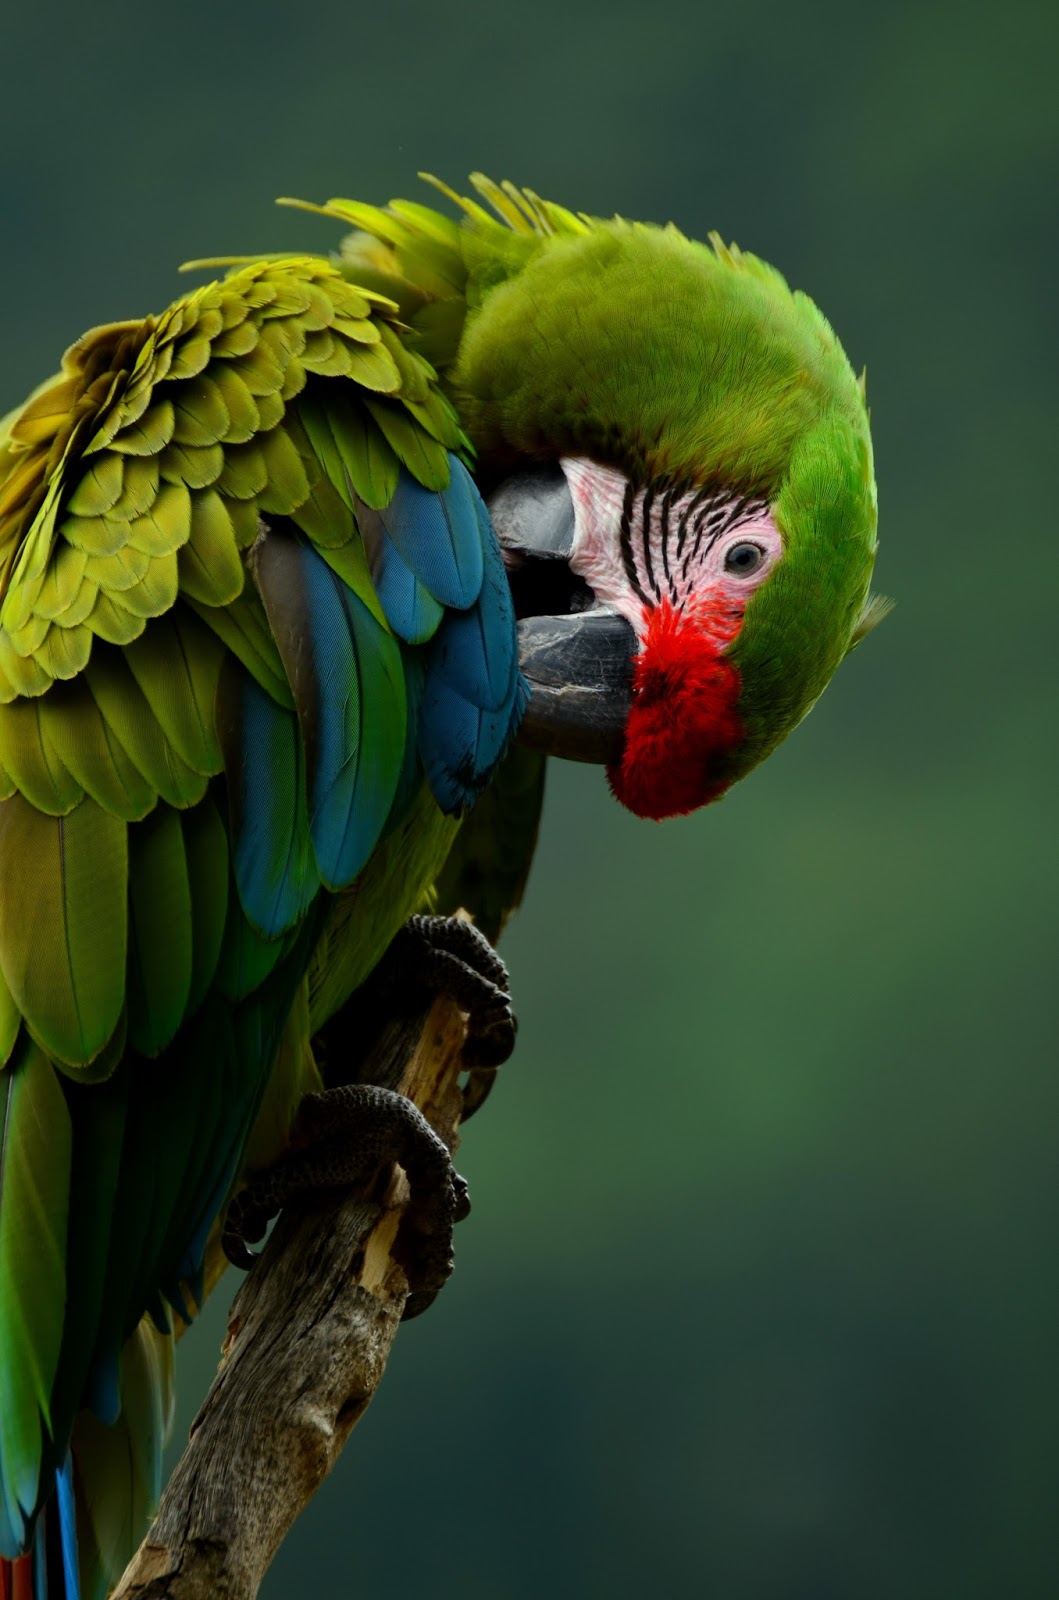 A colorful parrot preening.